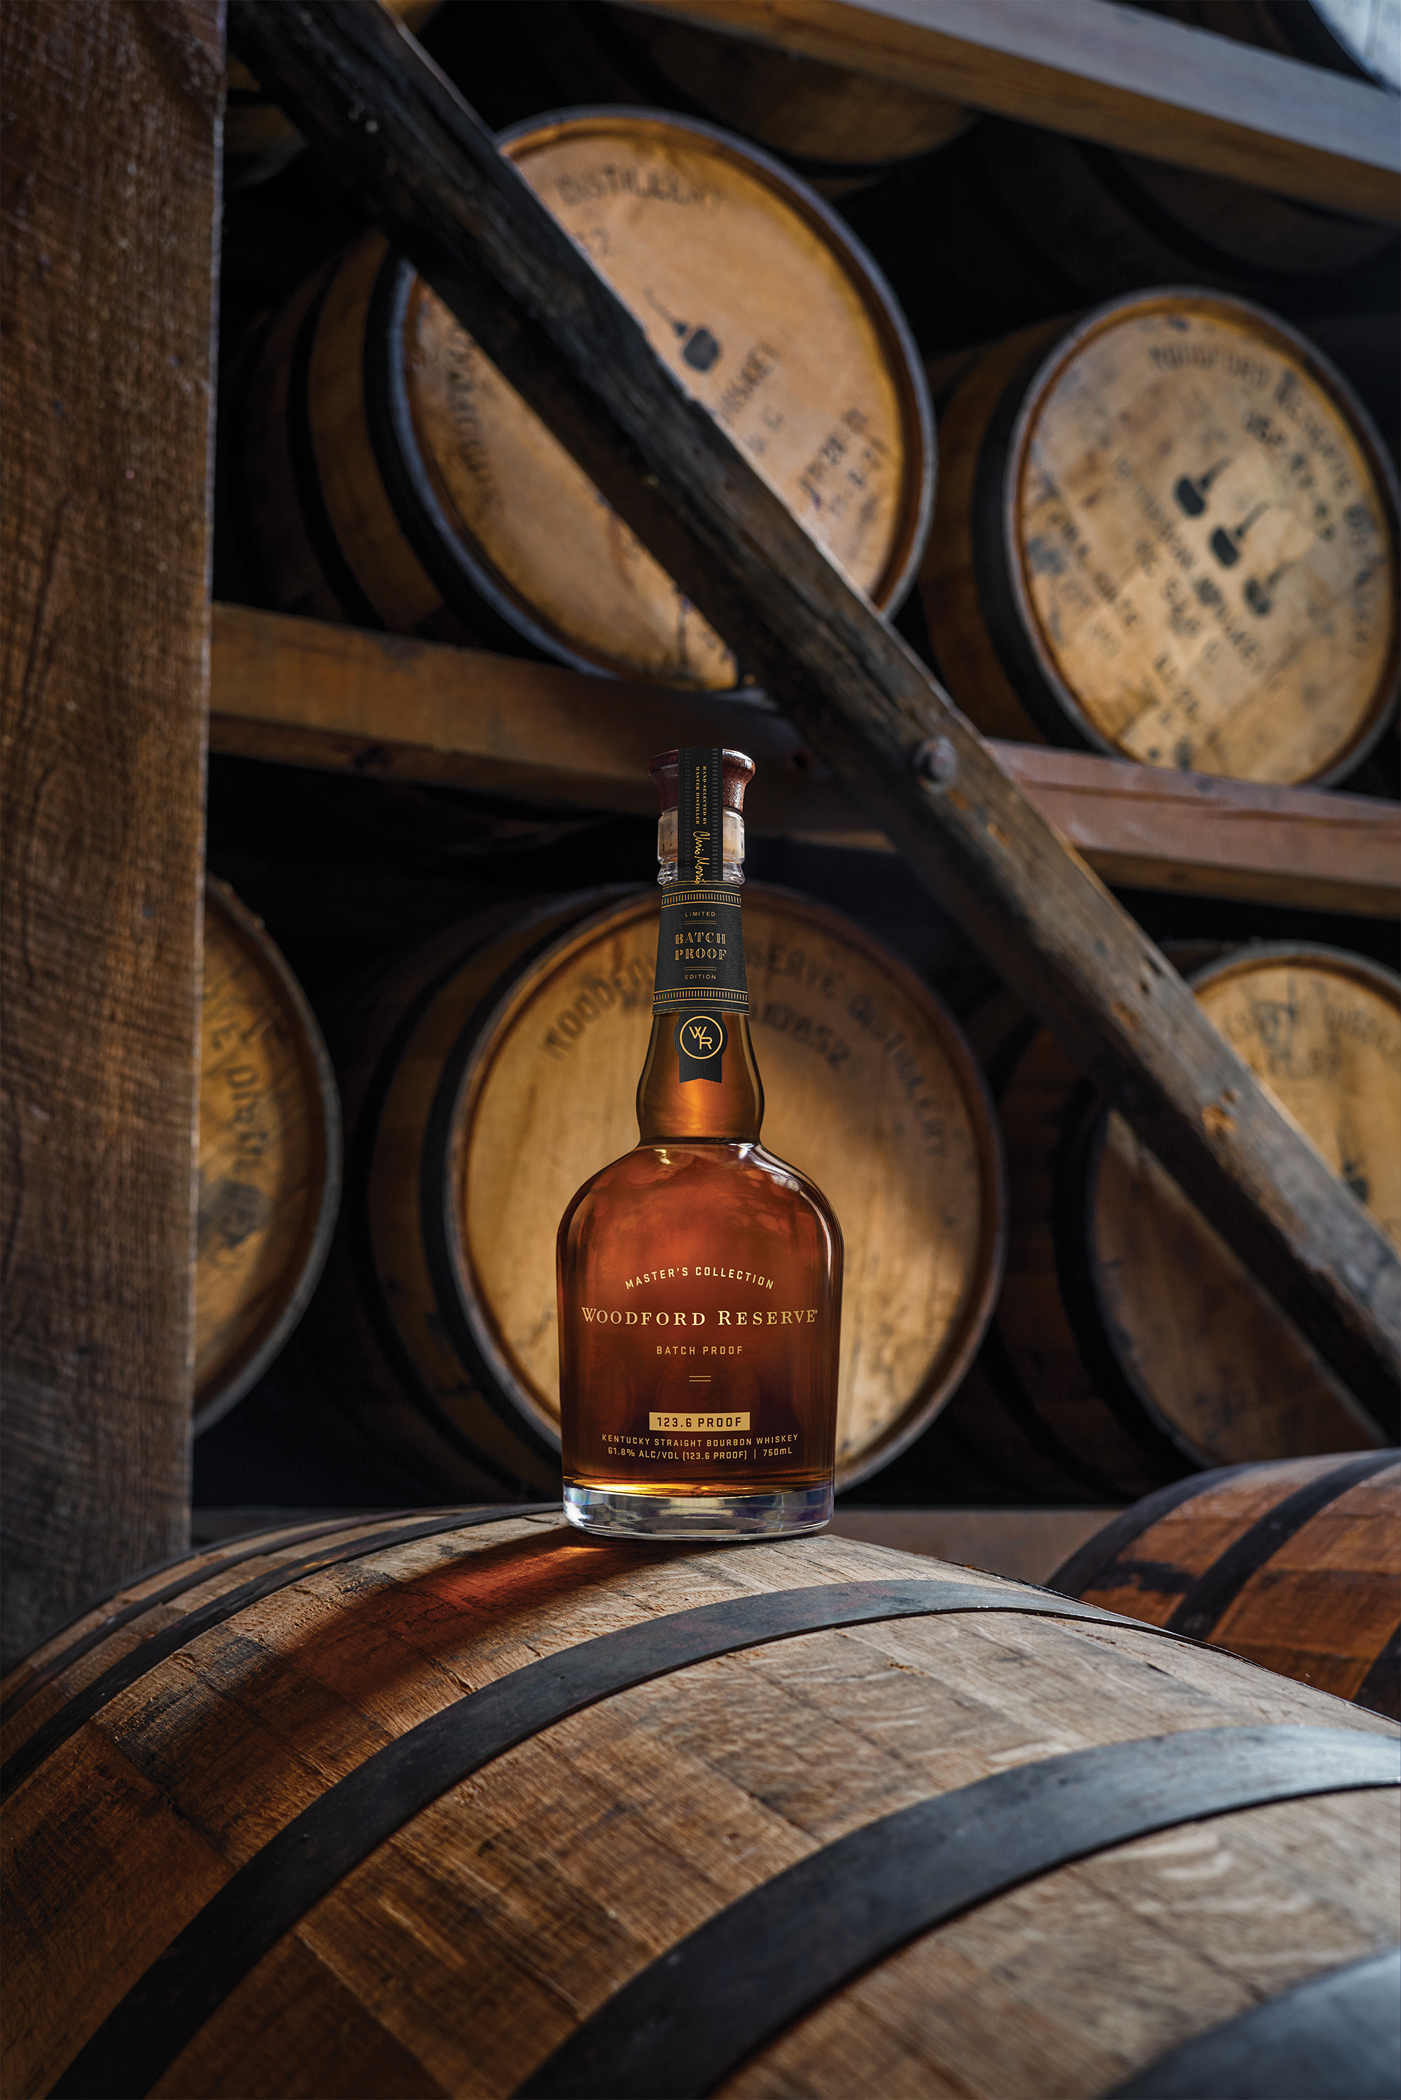 Press Release: Woodford Reserve Bourbon Releases Limited-Edition Batch Proof Series